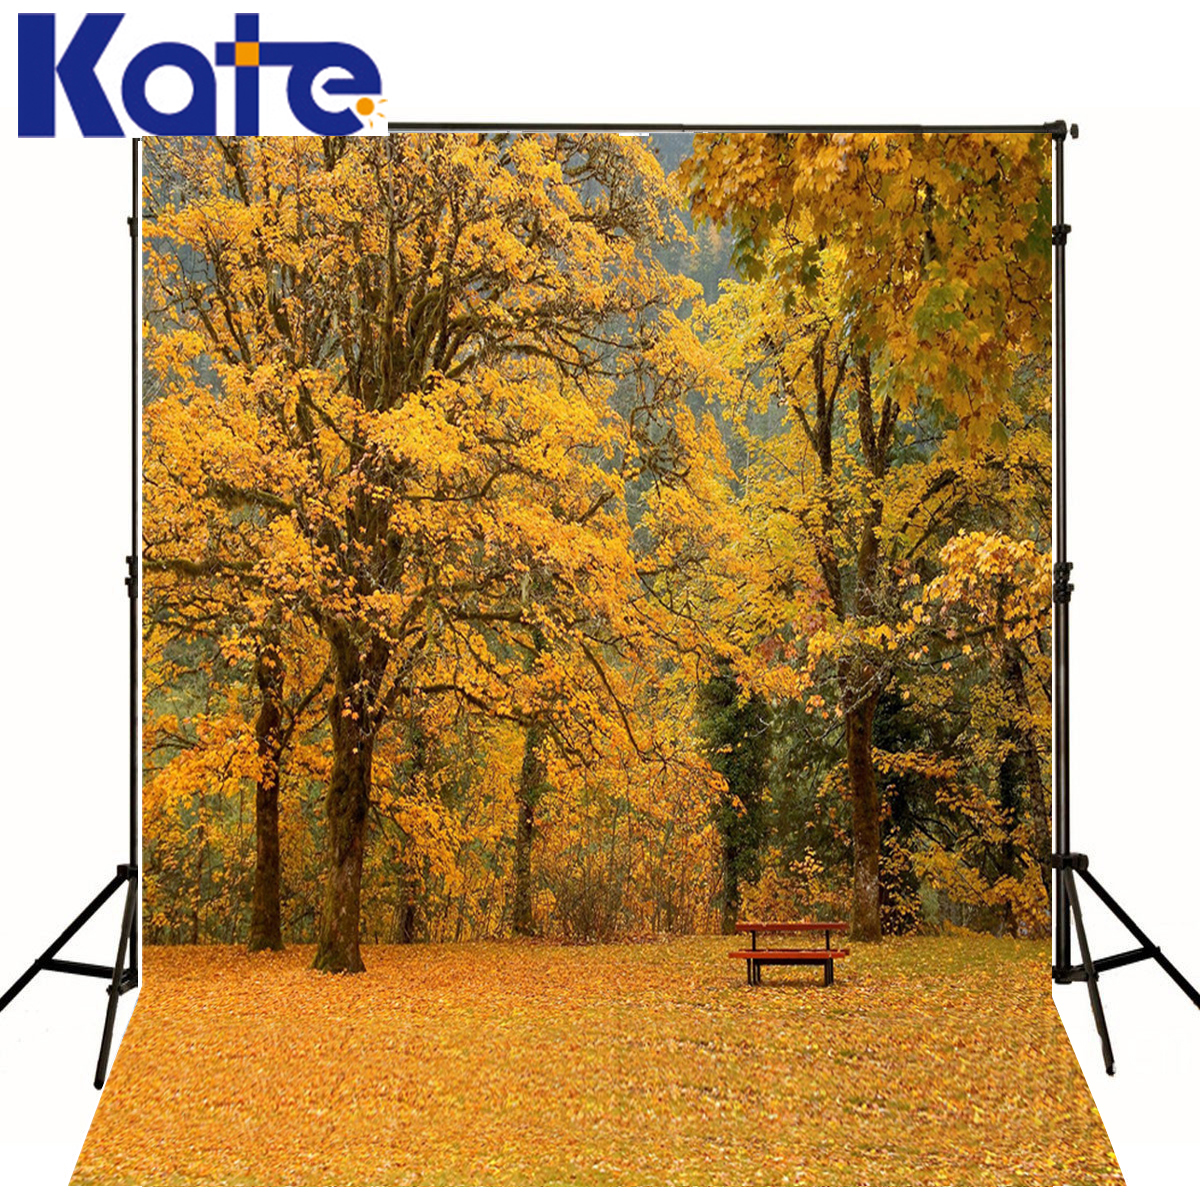 KATE Photo Background 5x7ft Yellow Leaf Chair Backdrop Children Scenery Backdrops Trees Sky Background for Photo Shoot Studio<br>